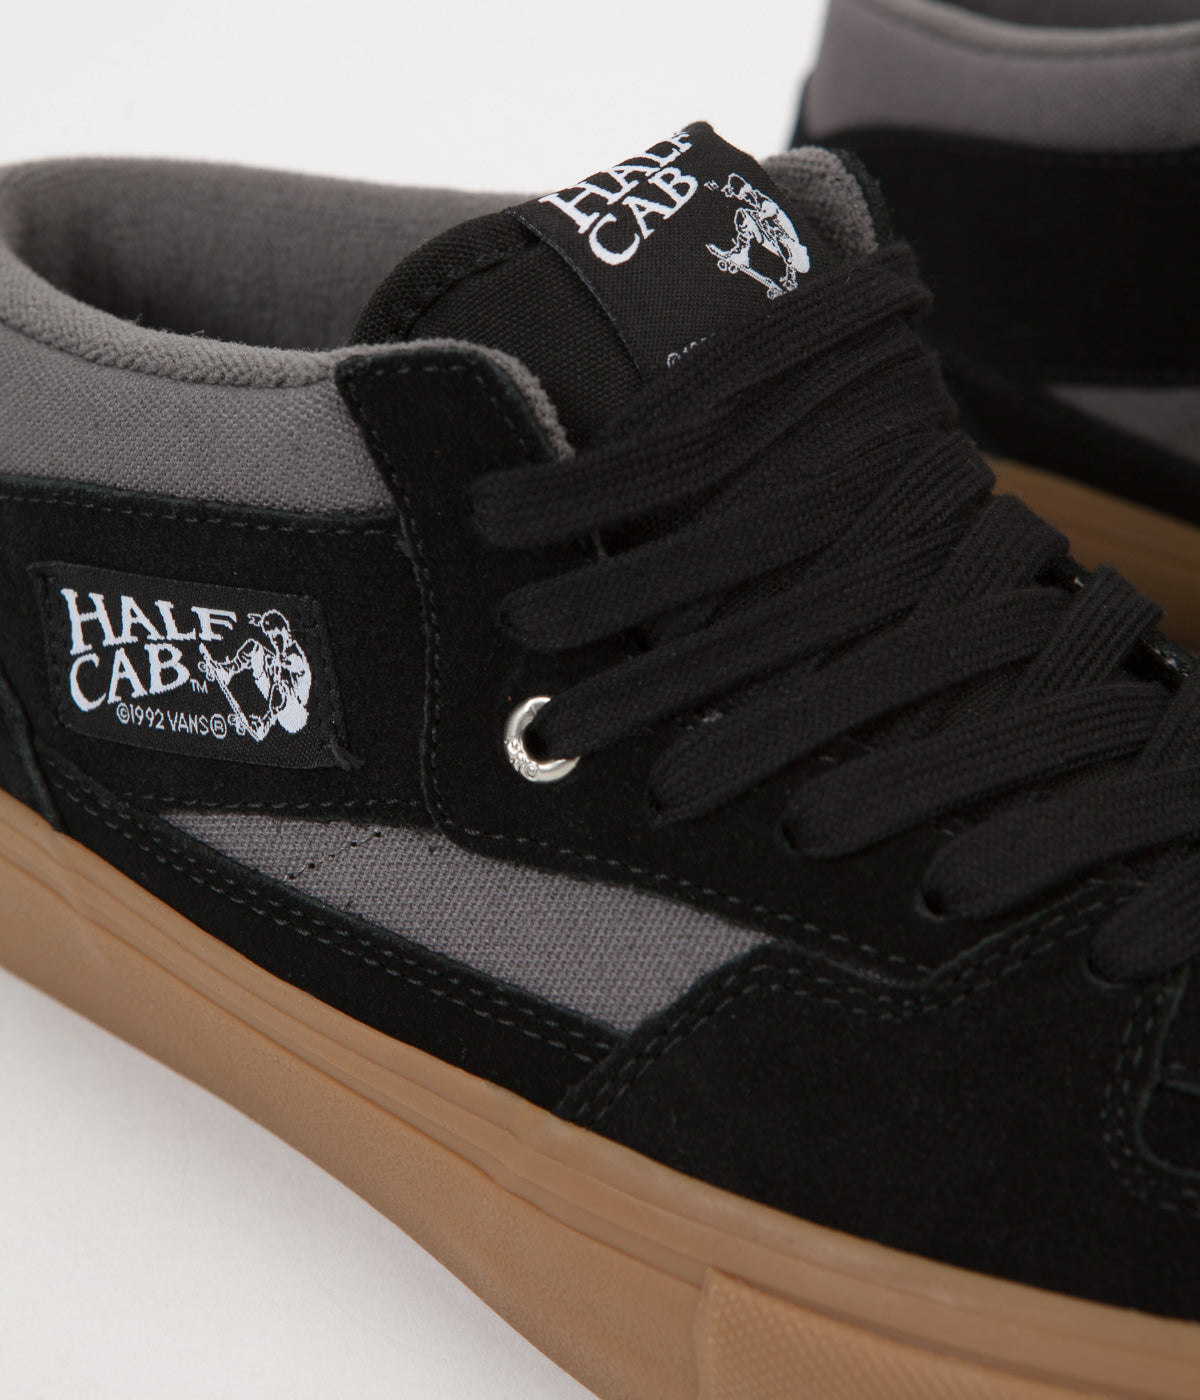 e70b78af101 ... Vans Half Cab Pro Shoes - Black   Pewter   Gum ...